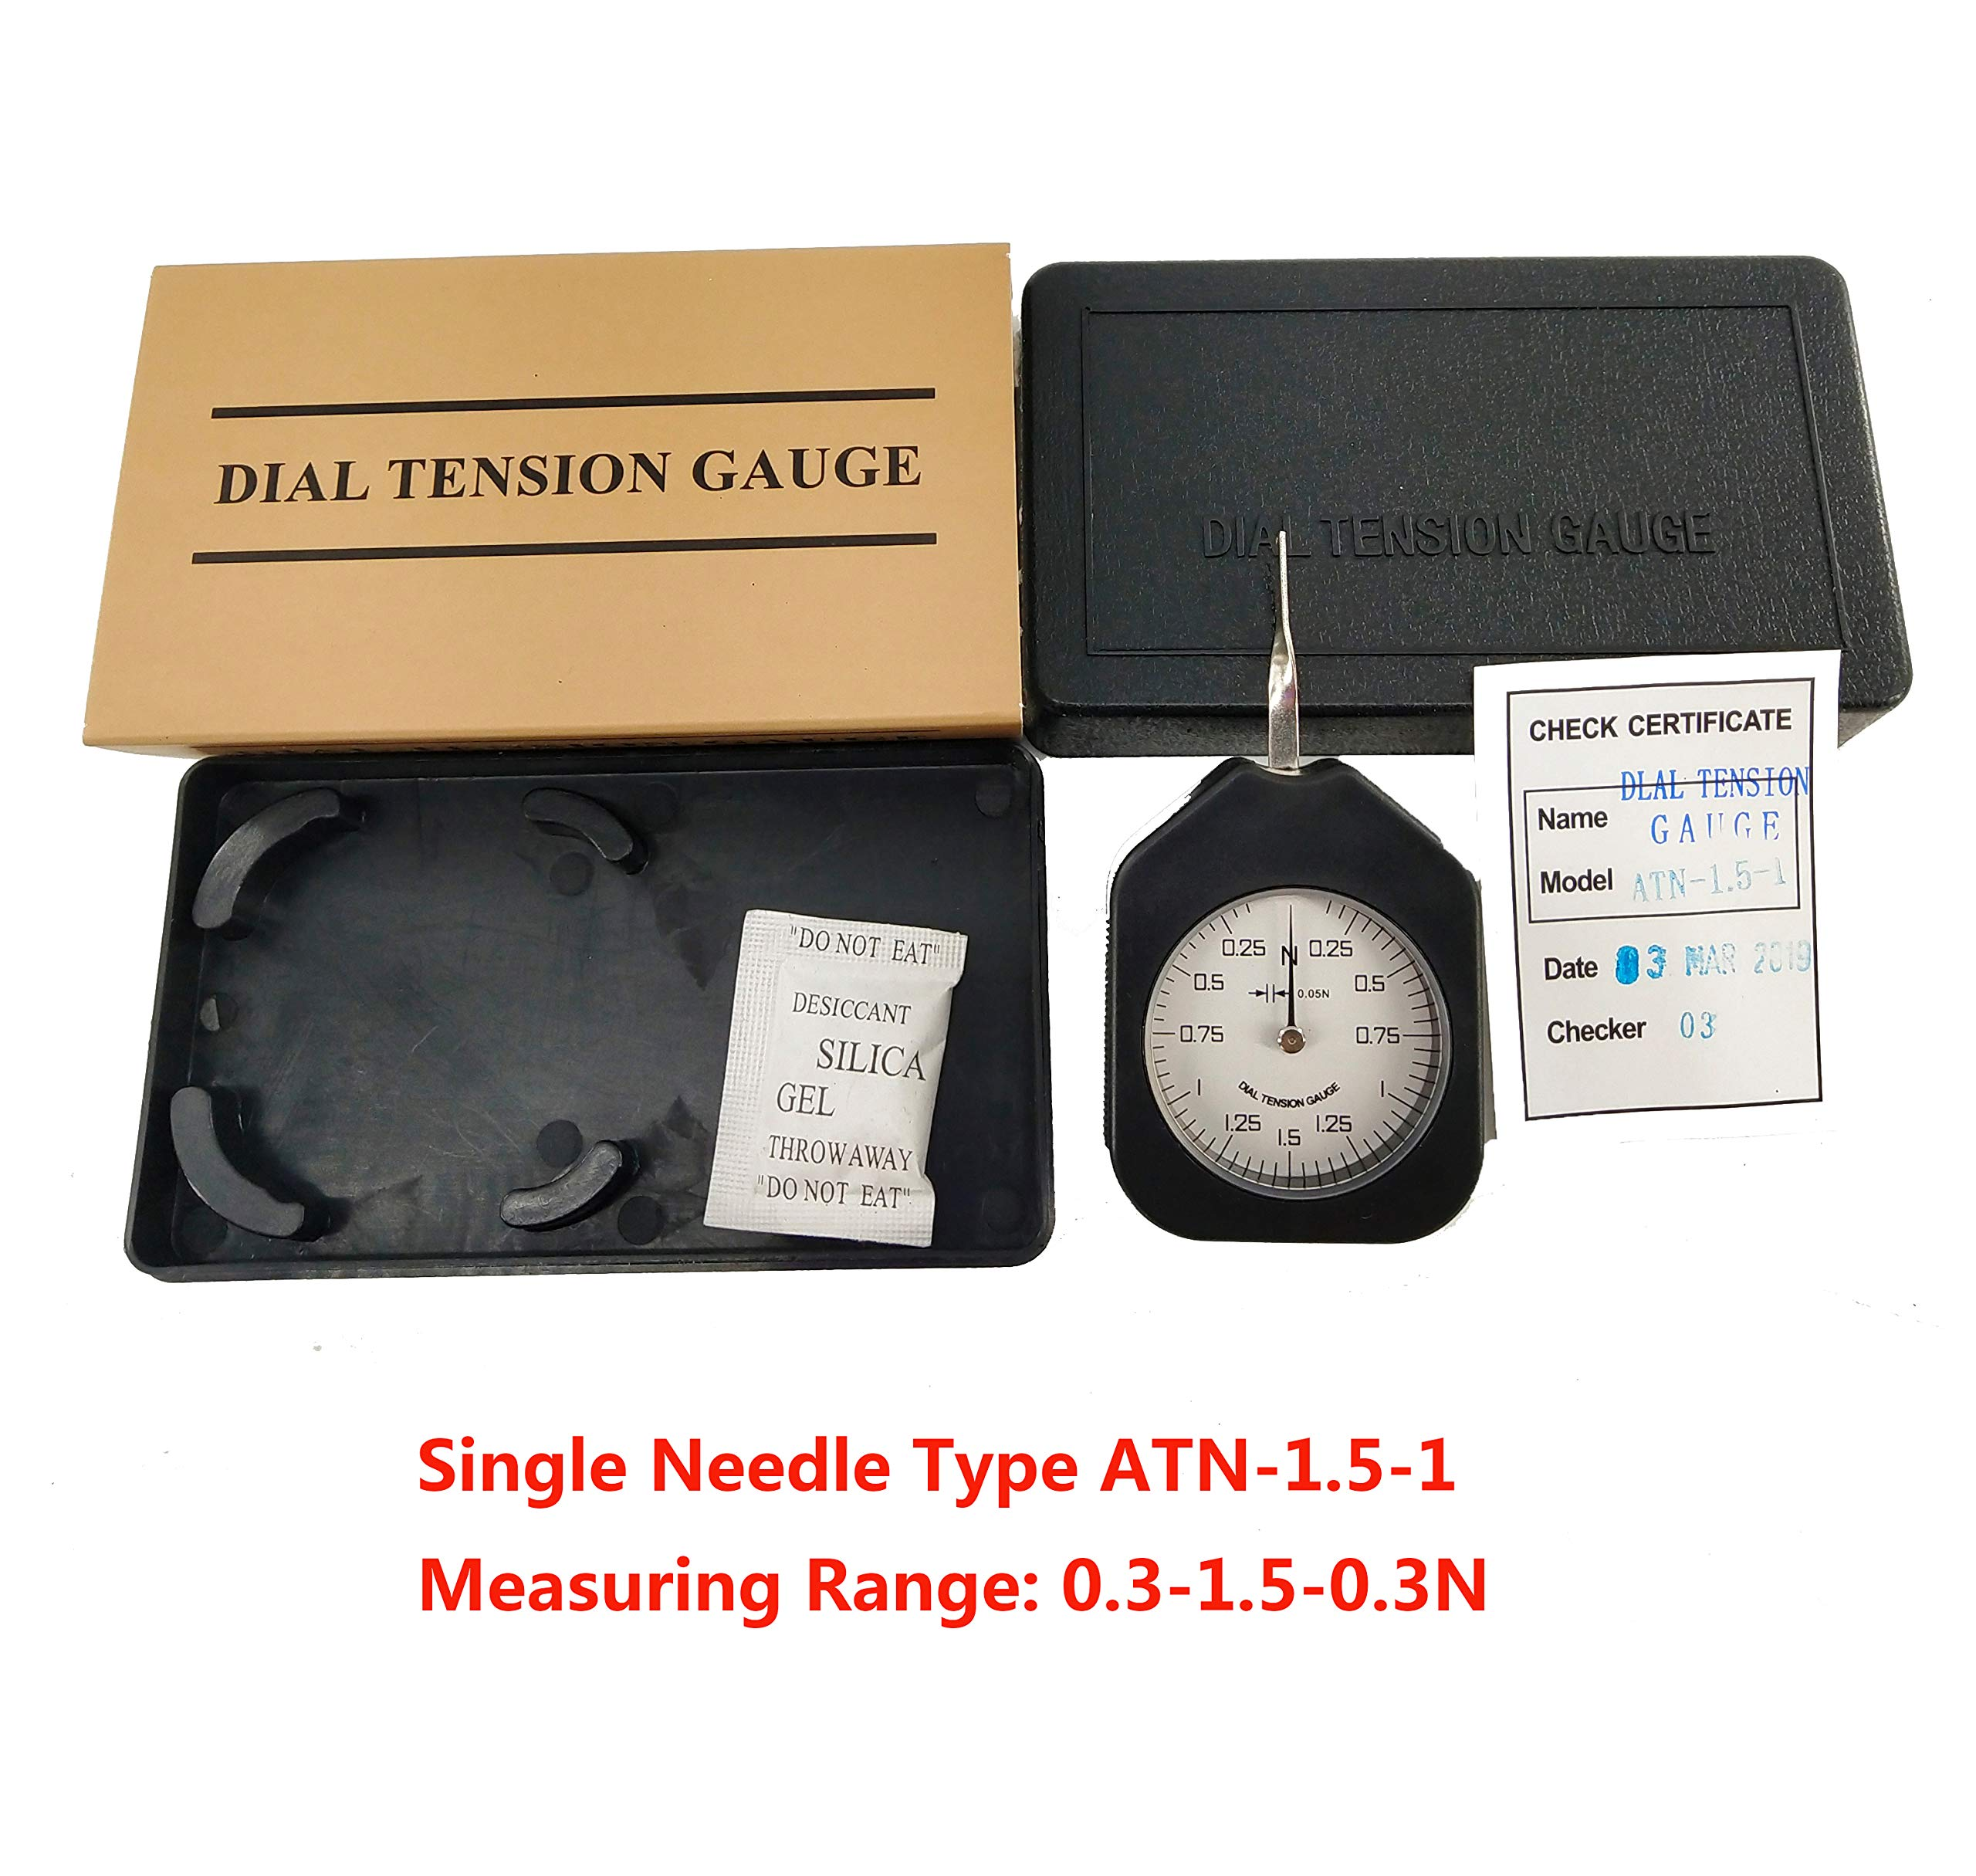 HFBTE ATN-1.5-1 Mini Size Analog Tension Gauge with Single Pointer Tensionmeter 0.3-1.5-0.3N Measurement Range by HFBTE